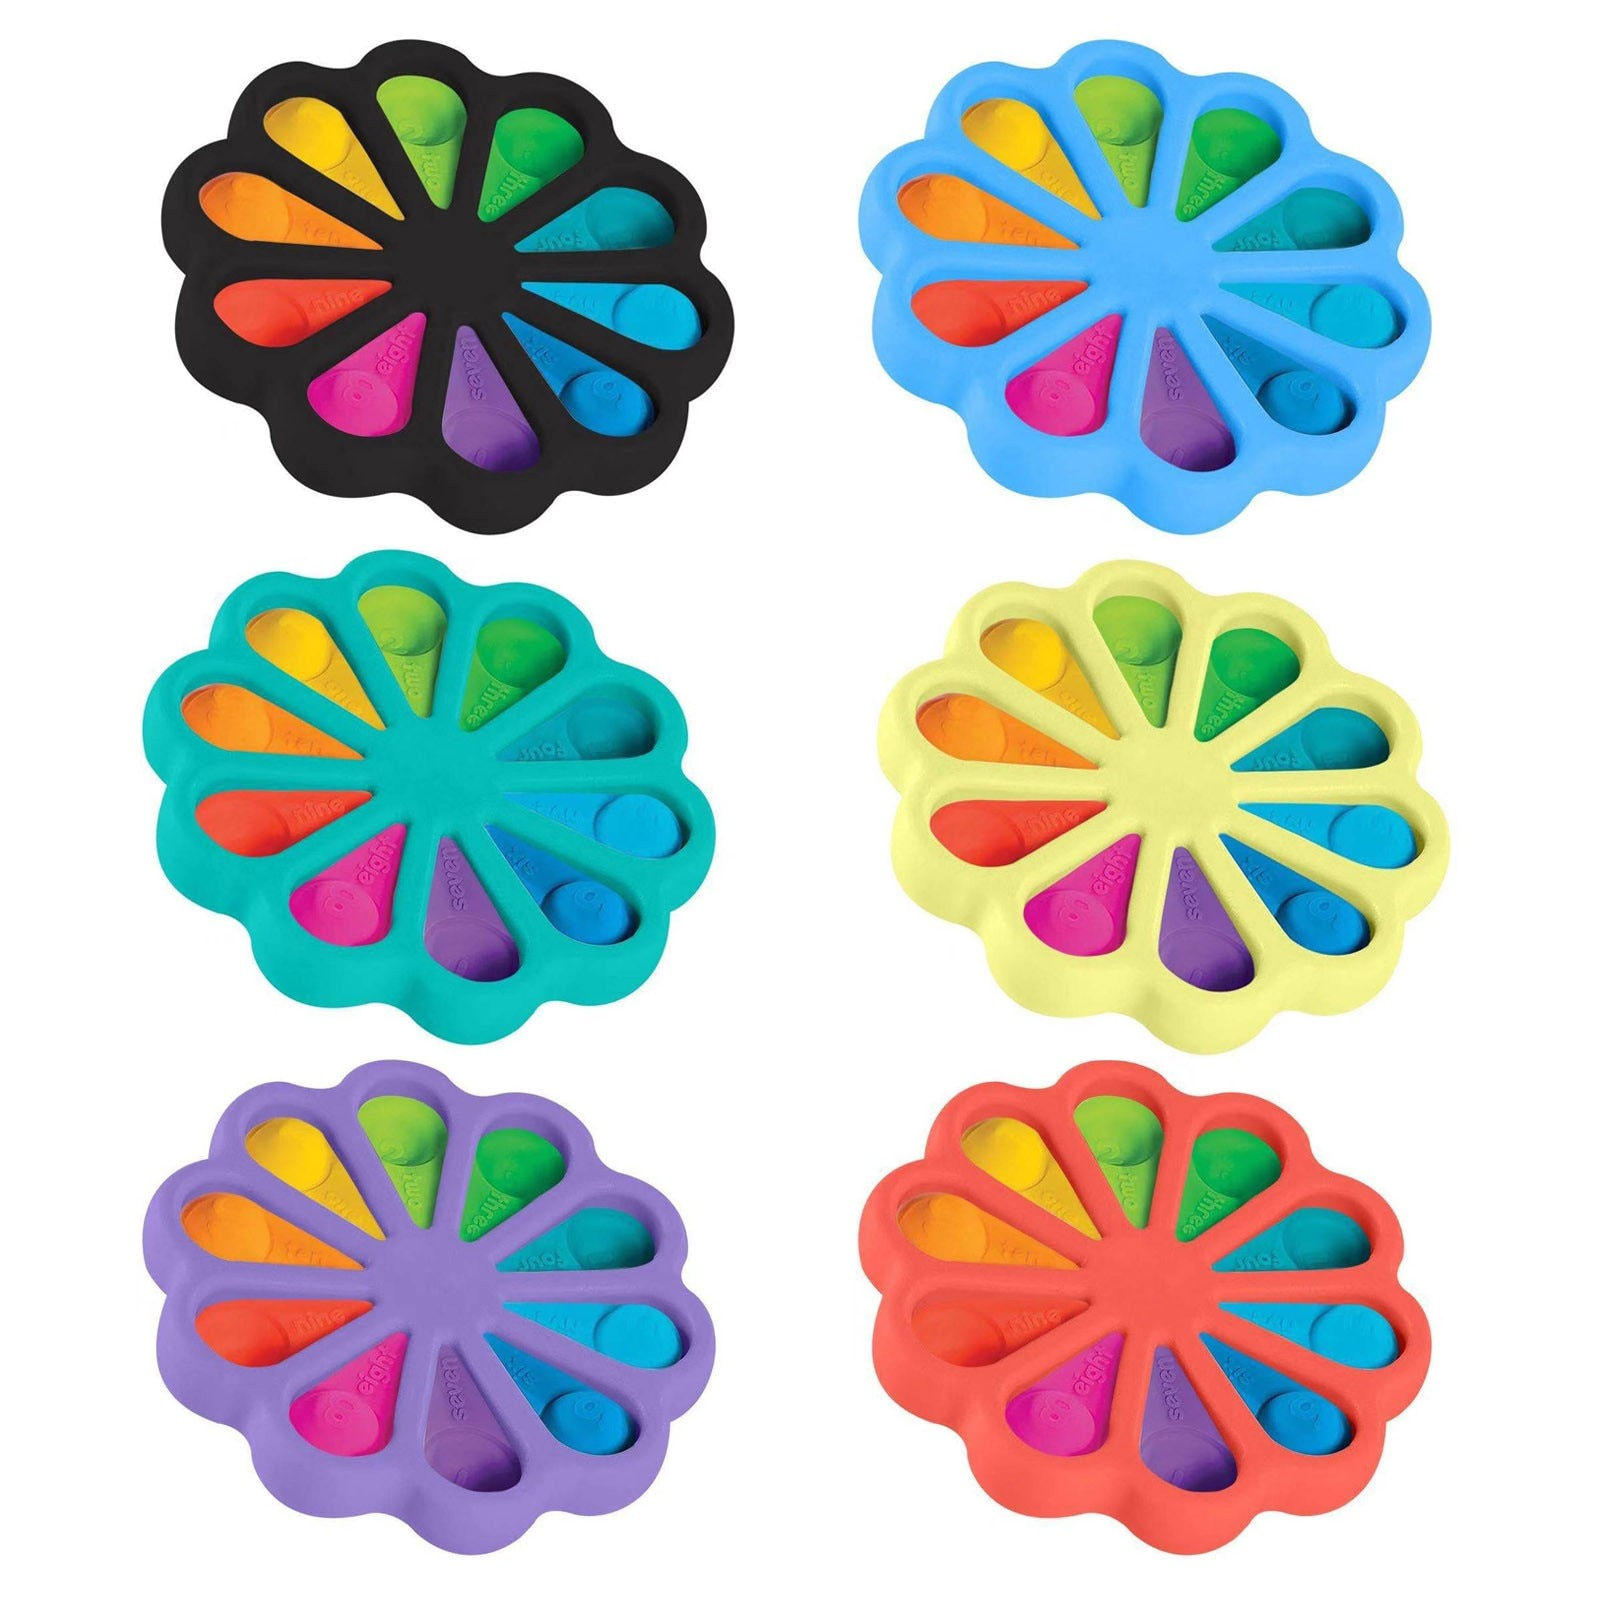 Fidget Dimple Toy Stress Relief Hand Toys For Kids Easy To Use Soft Silicone Toys For Adults 18 Antistress For Children Popite enlarge